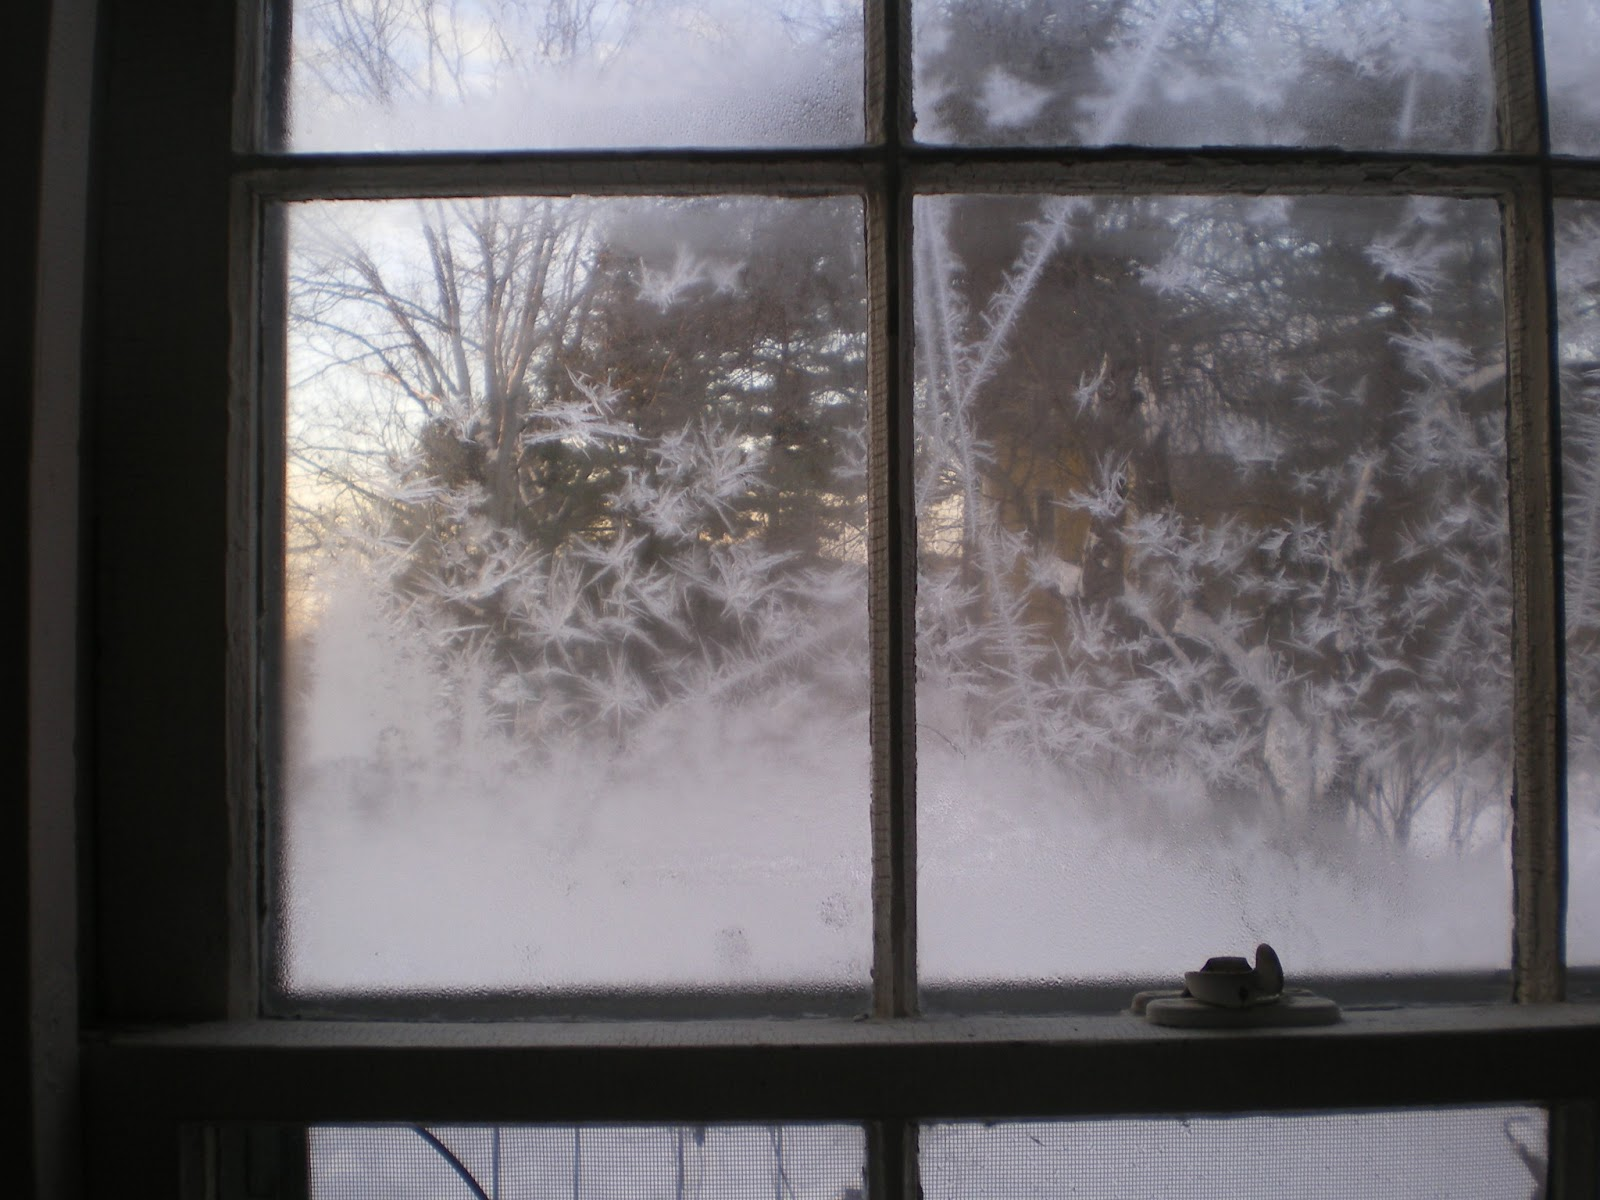 Captivating The Cold Air Has Knocked All The Moisture Out Of The Air And Itu0027s  Crystallized Onto The Windows In This Cold Room. Itu0027s Cold But, Oh So  Beautiful And I Just ...